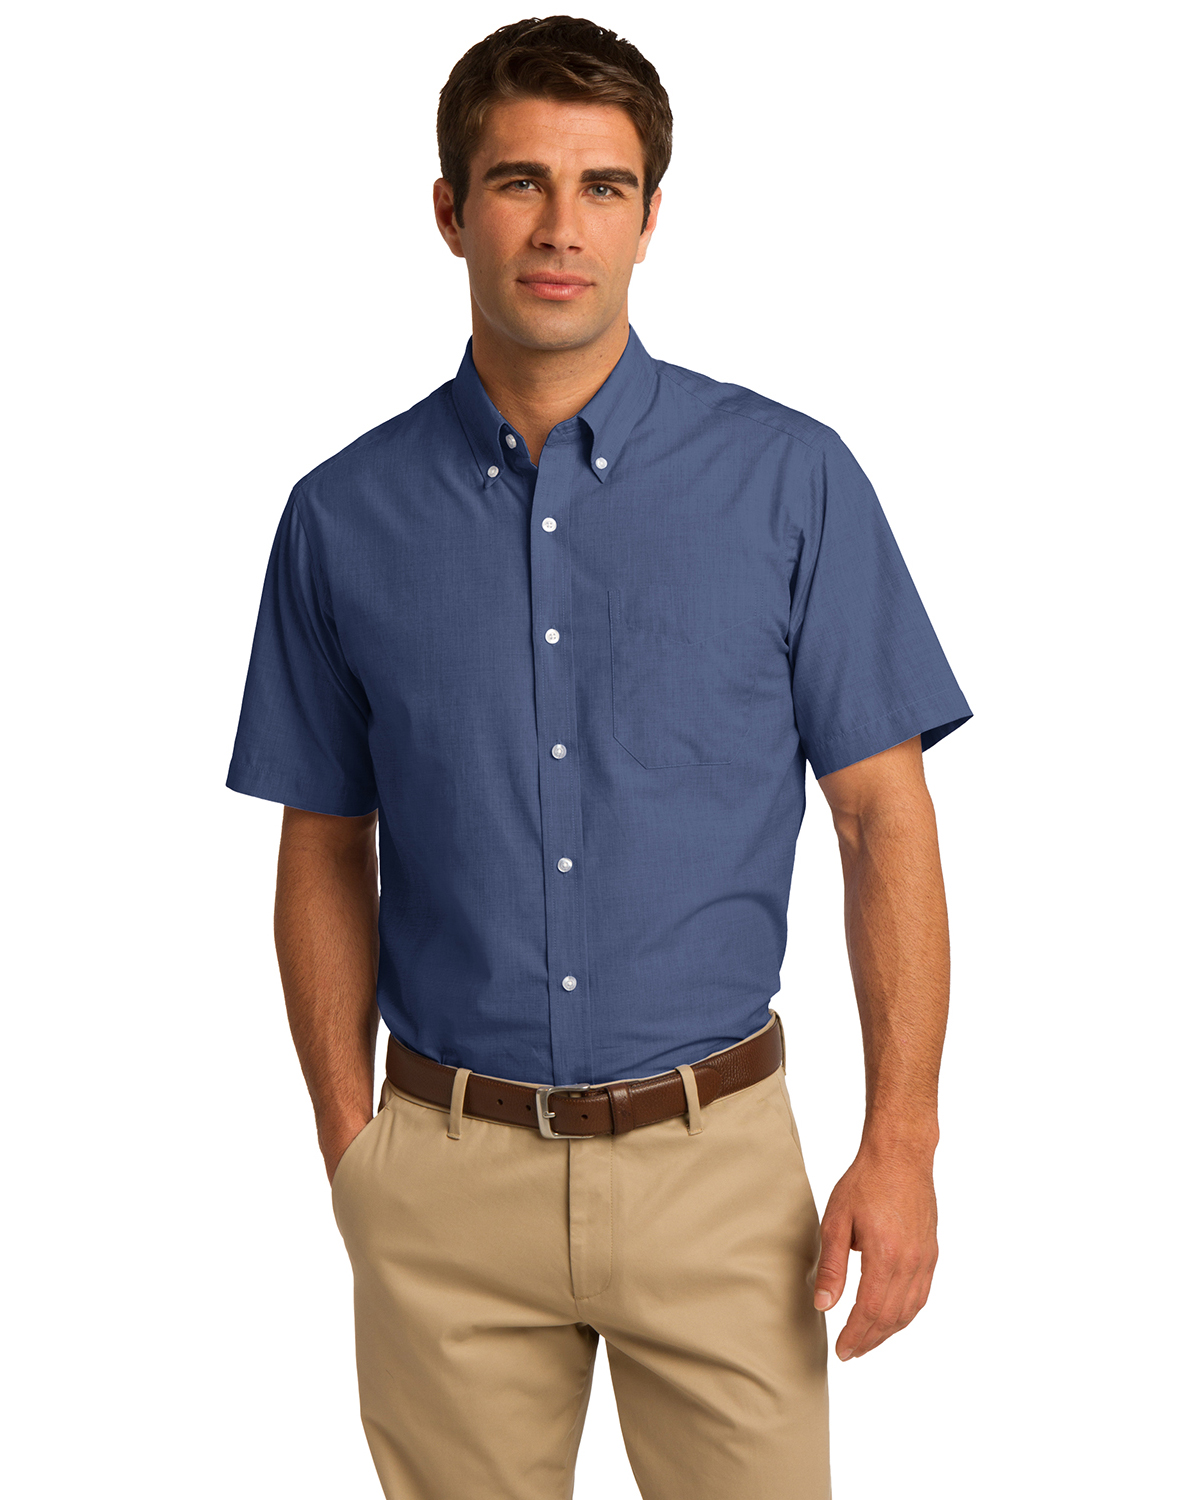 Port Authority S656 Men Short Sleeve Crosshatch Easy Care Shirt at GotApparel